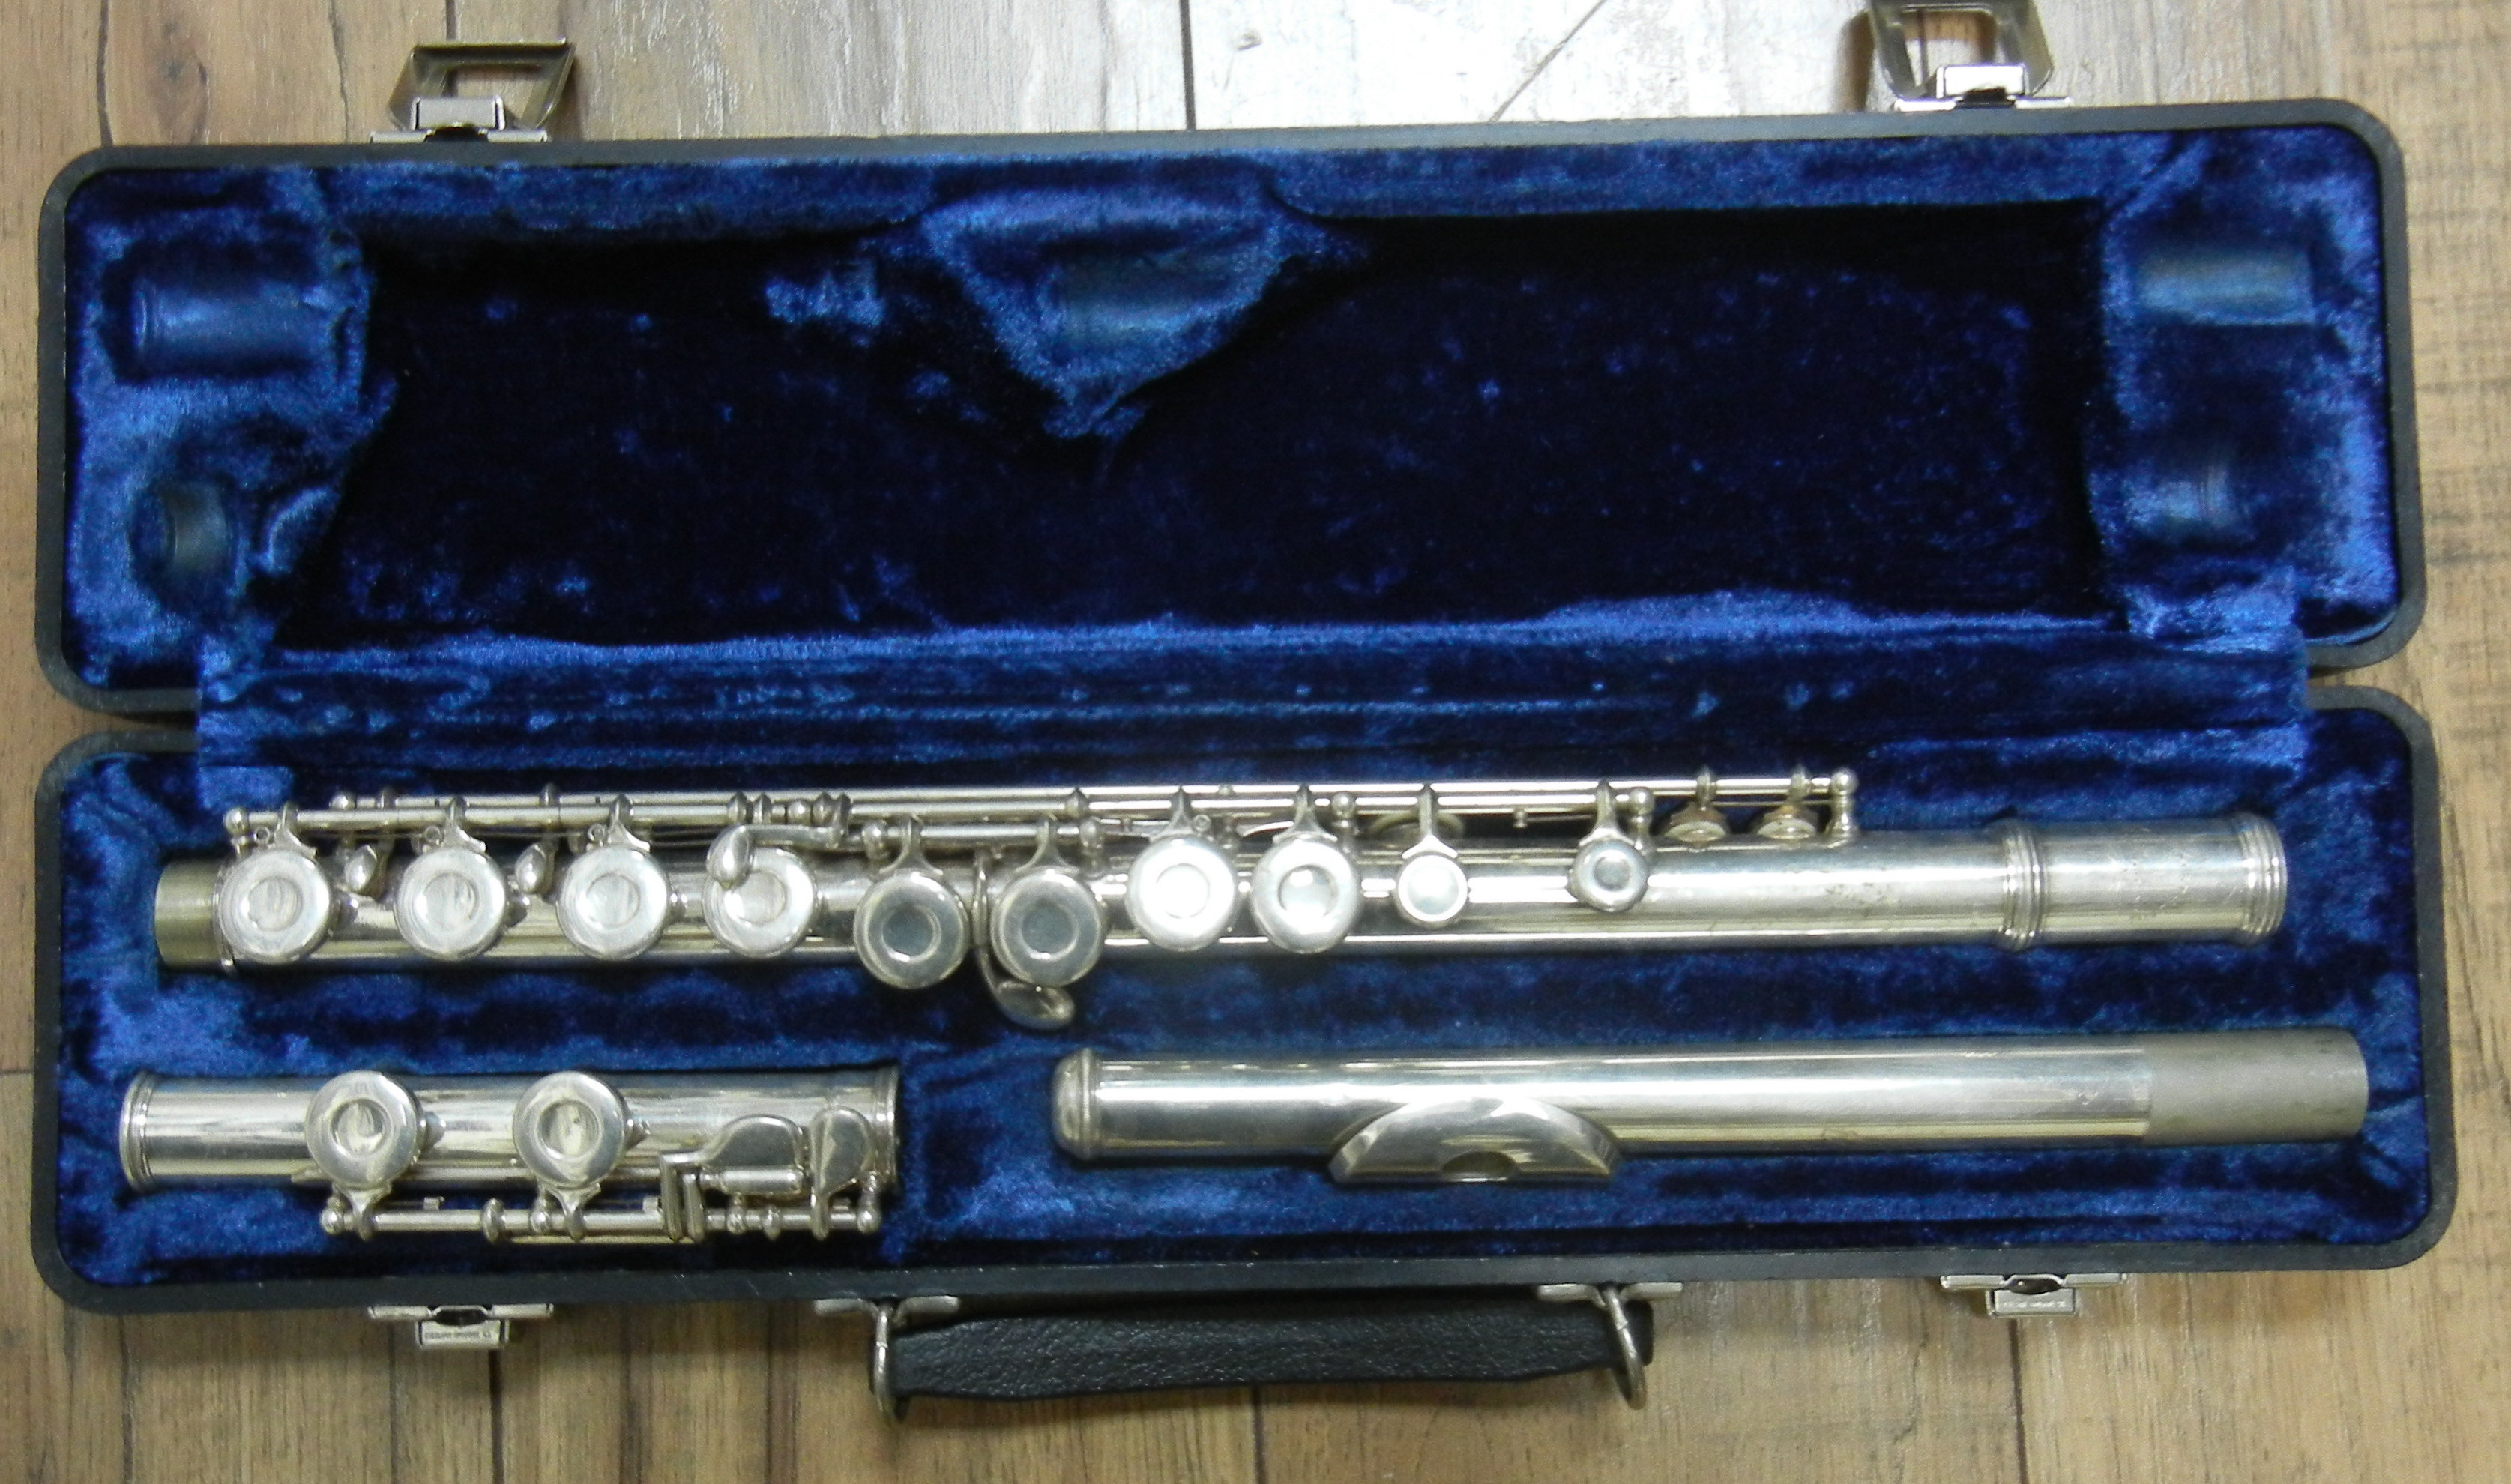 UNBRANDED FLUTE IN CASE